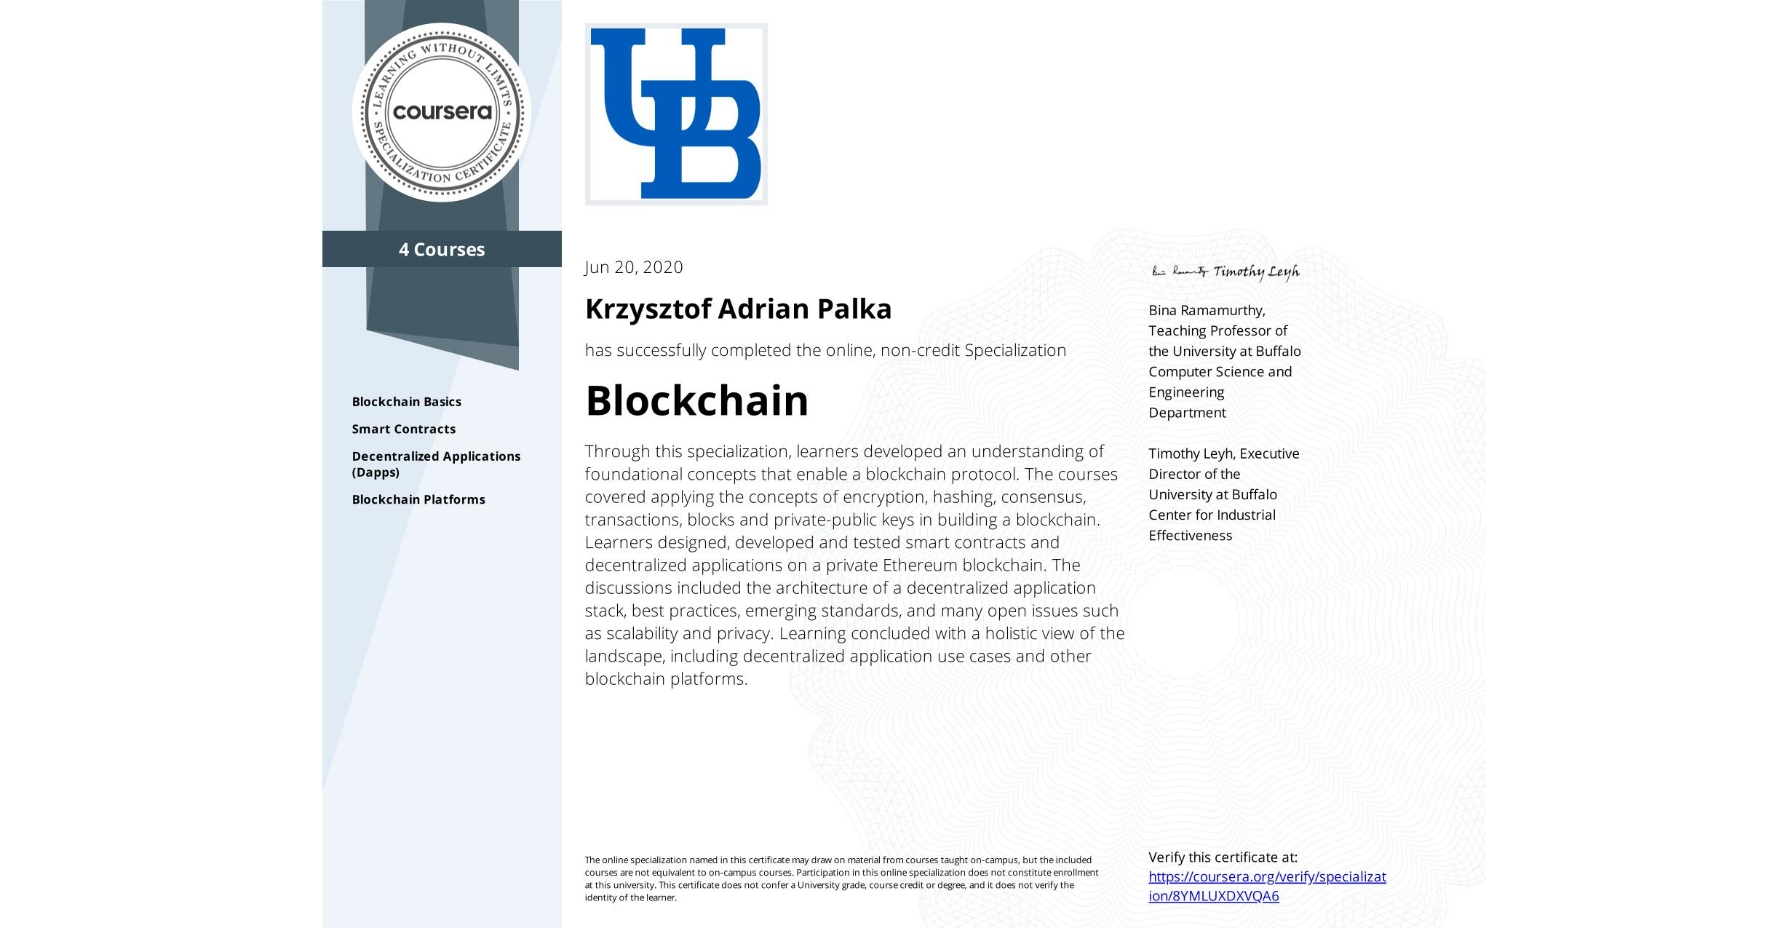 View certificate for Krzysztof Adrian Palka, Blockchain, offered through Coursera. Through this specialization, learners developed an understanding of foundational concepts that enable a blockchain protocol. The courses covered applying the concepts of encryption, hashing, consensus, transactions, blocks and private-public keys in building a blockchain. Learners designed, developed and tested smart contracts and decentralized applications on a private Ethereum blockchain. The discussions included the architecture of a decentralized application stack, best practices, emerging standards, and many open issues such as scalability and privacy. Learning concluded with a holistic view of the landscape, including decentralized application use cases and other blockchain platforms.